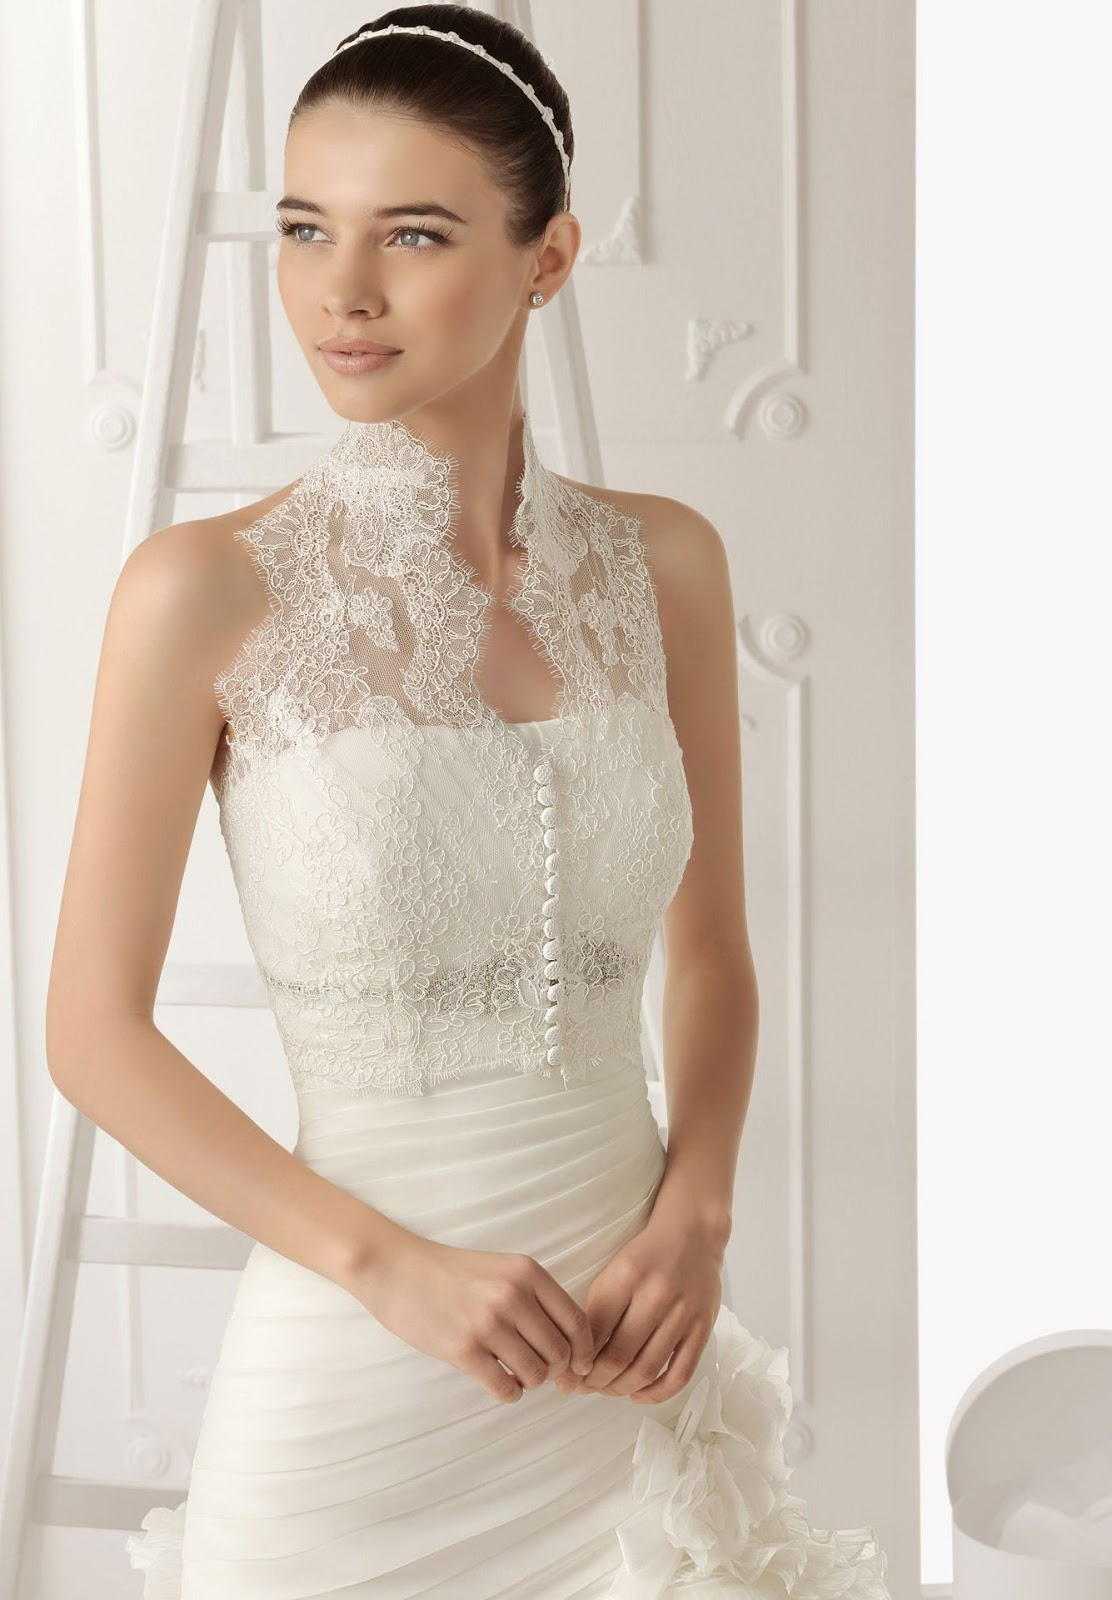 WhiteAzalea Elegant Dresses New Arrival Elegant Wedding Dresses With Stunnin